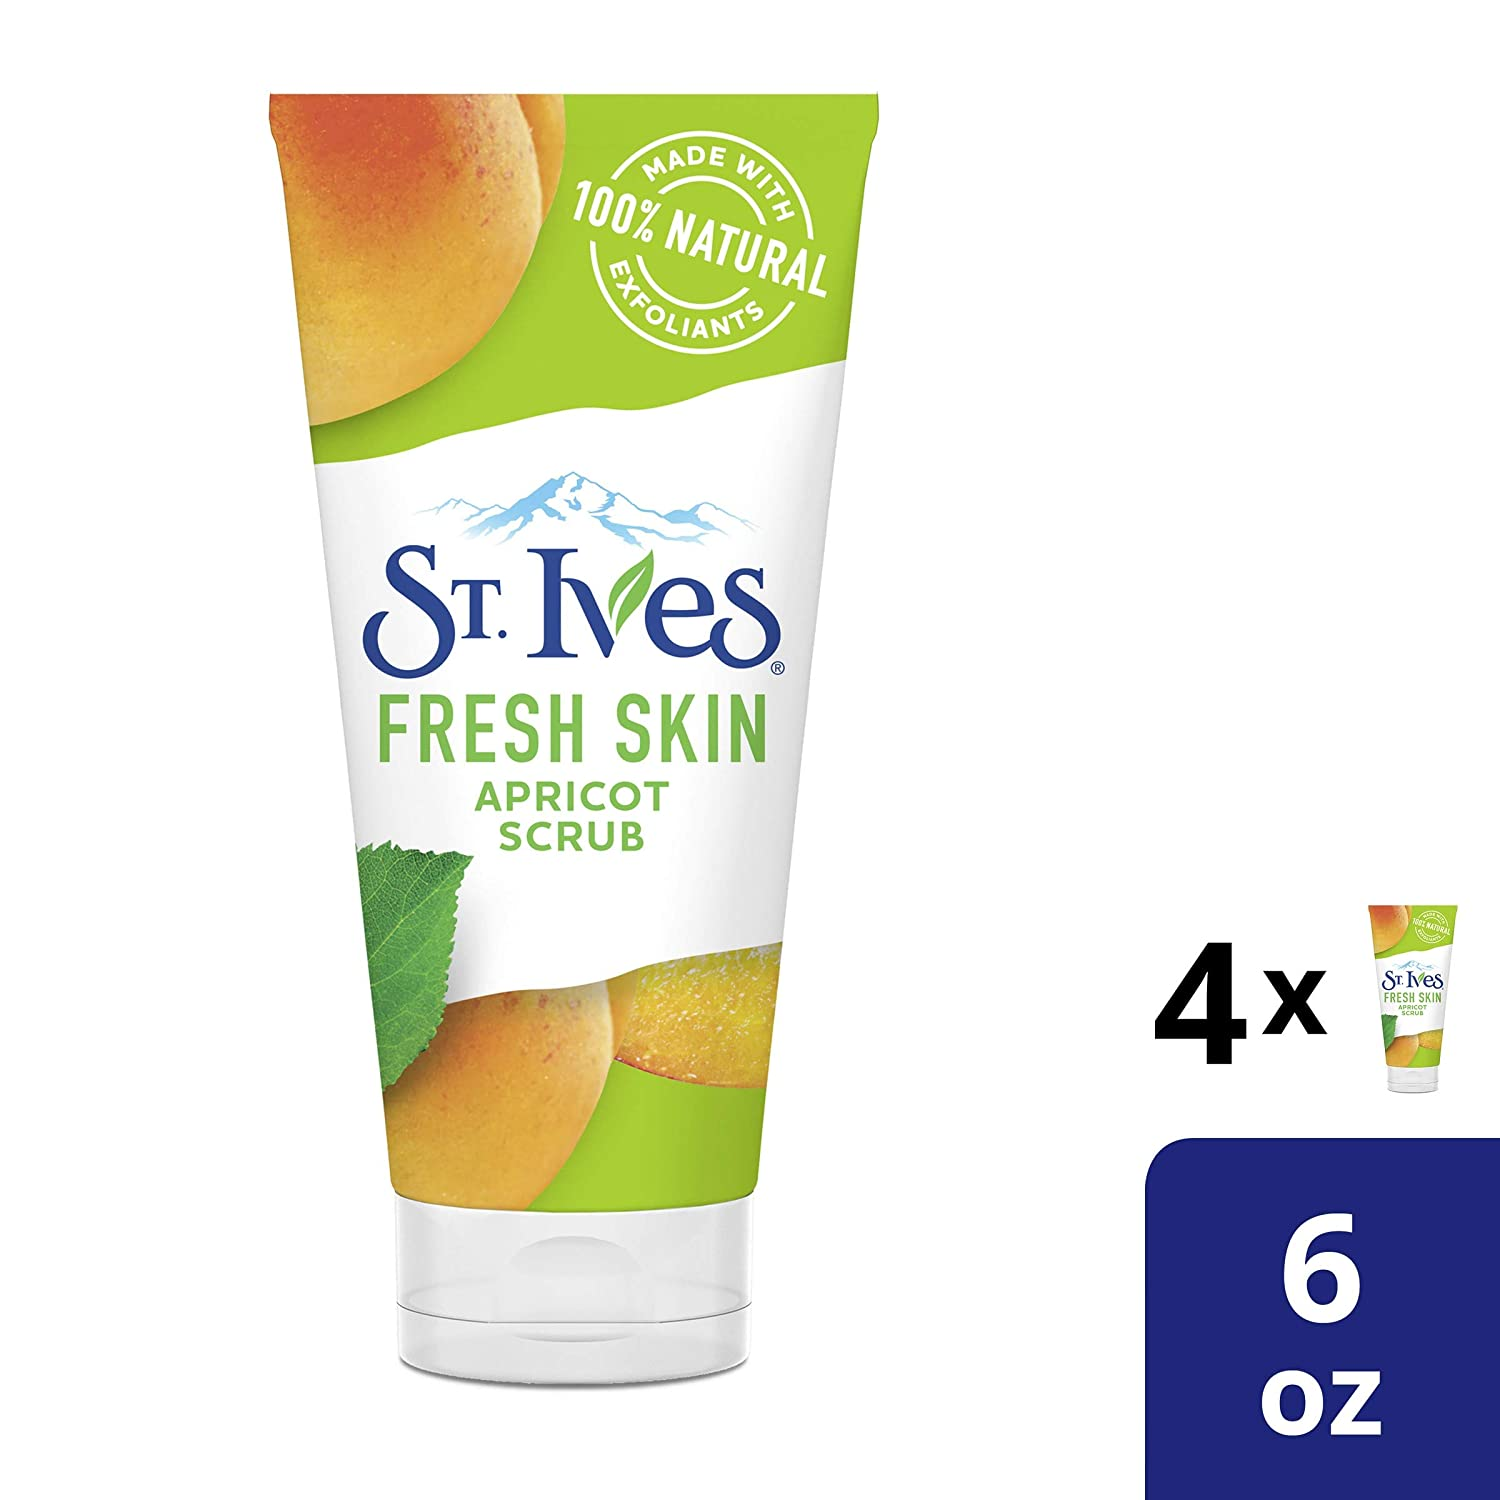 St. Ives Fresh Skin Apricot Face Scrub 6 oz, 4 count